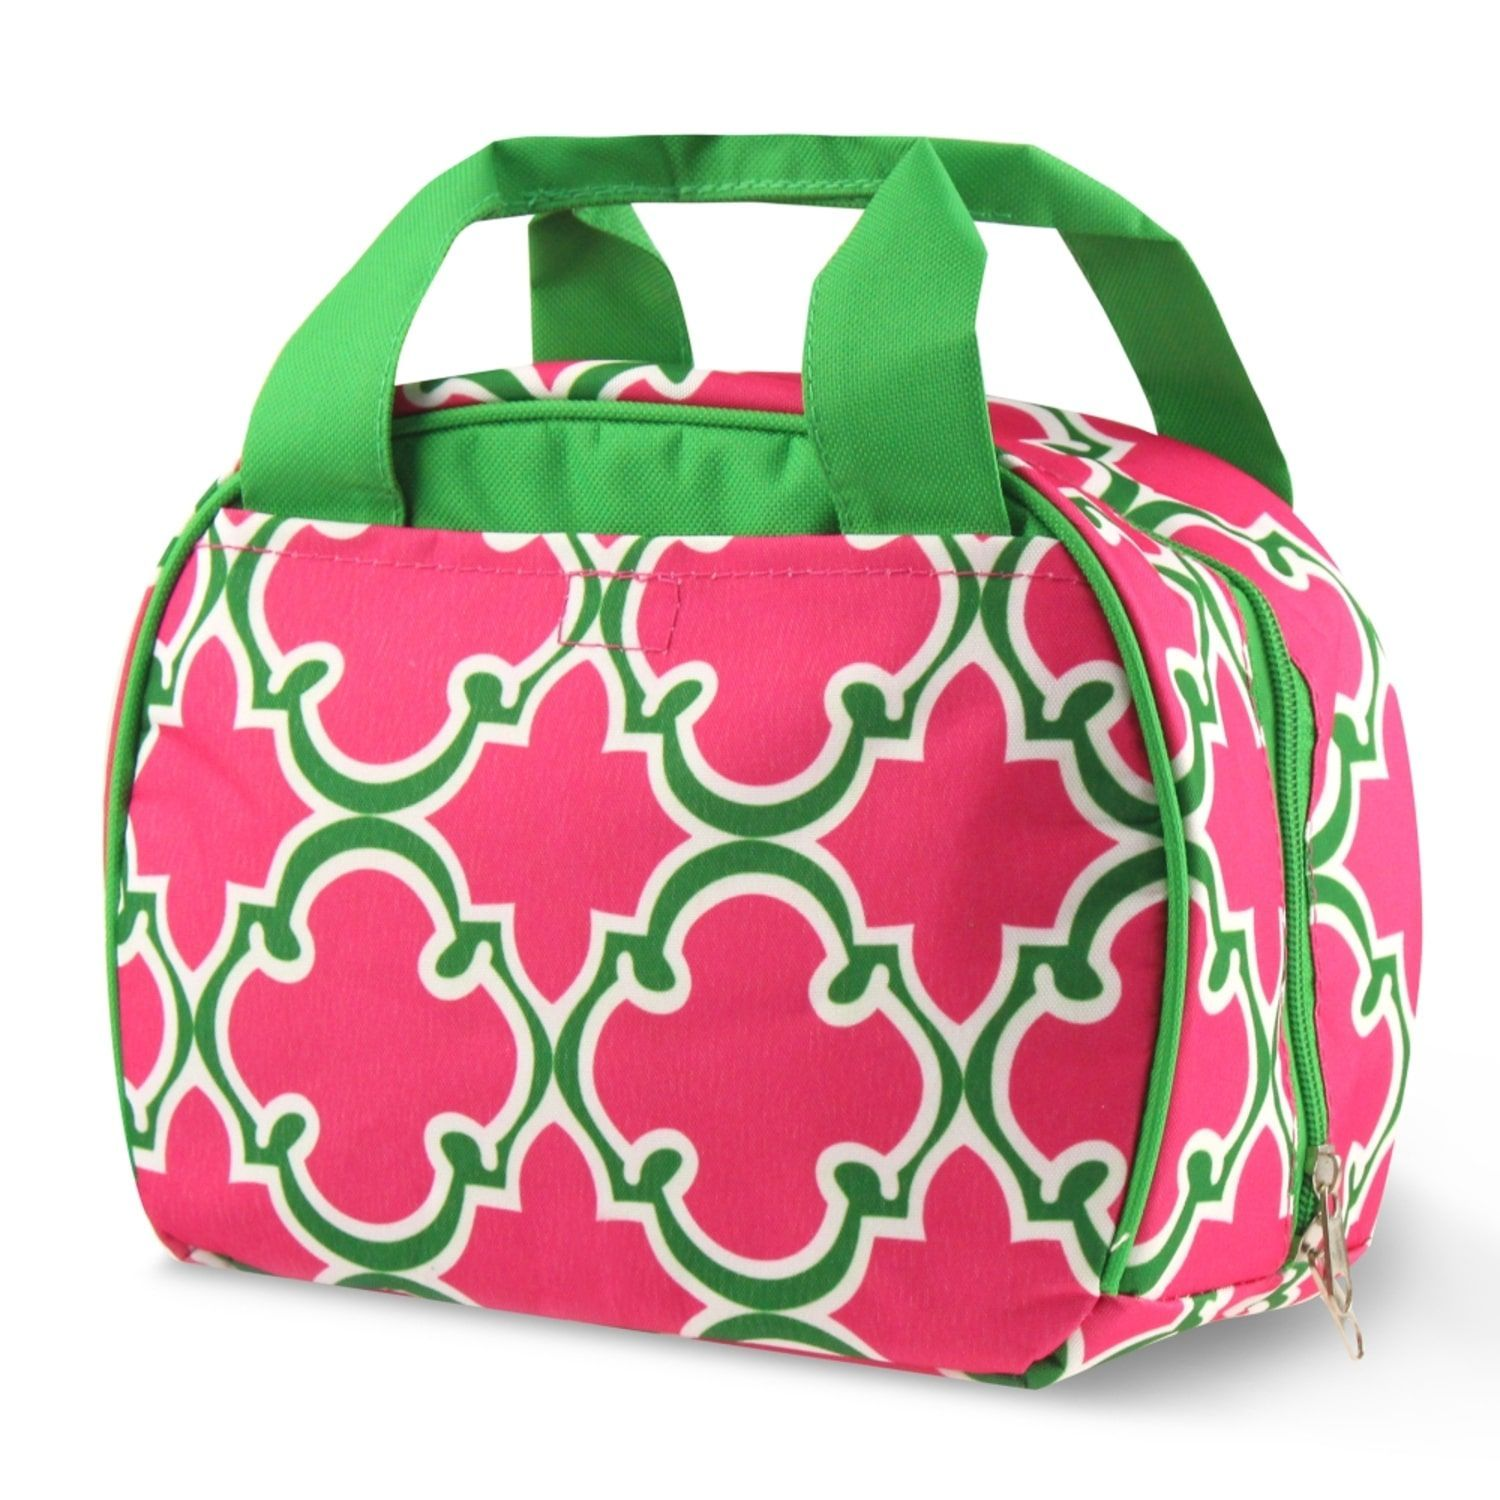 Zodaca Round Quatrefoil Stylish Small Reusable Insulated Work School Lunch Tote Carry Storage Zipper Cooler Bag